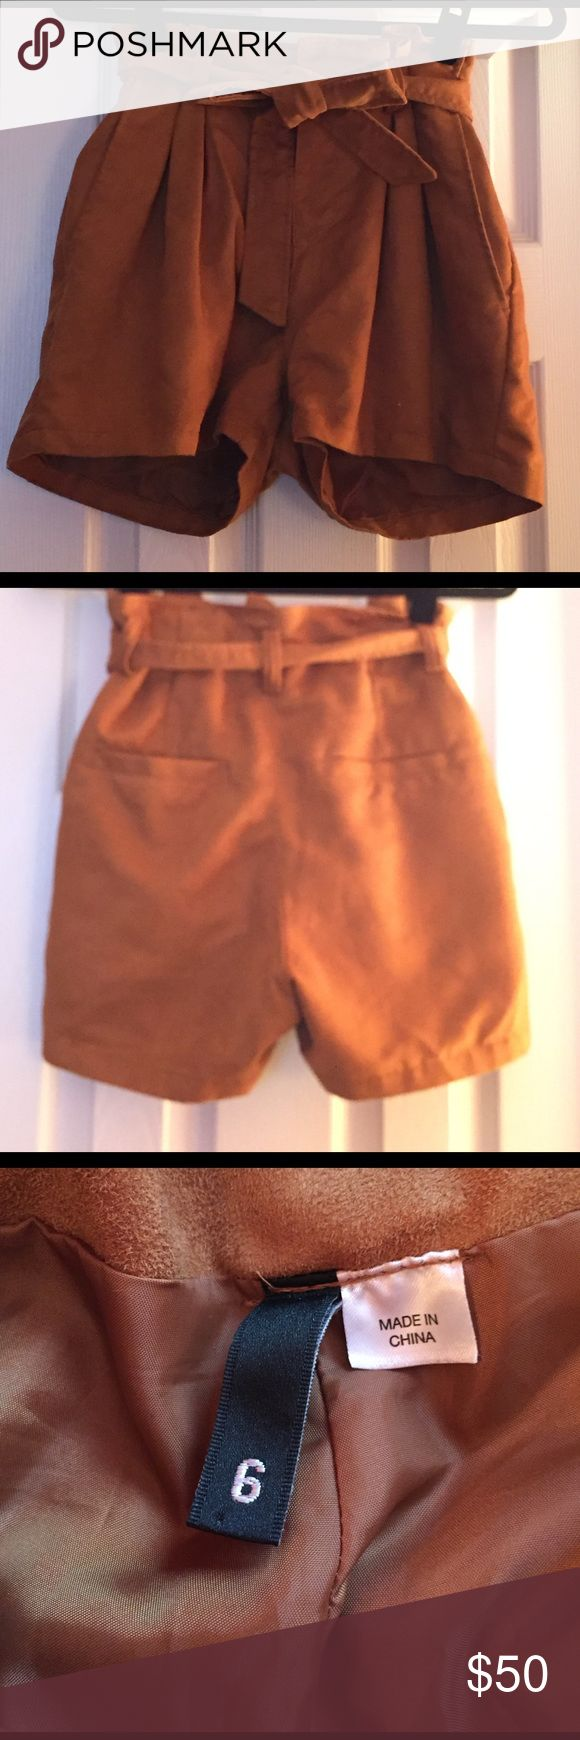 Camel Shorts This is a pair of camel colored shorts. They are super cute and can be worn with a cute pair of tights and riding boots in the fall. Shorts come to about mid thigh and makes your rear appear very flattering. I loved the way these shorts hugged my curves. Shorts